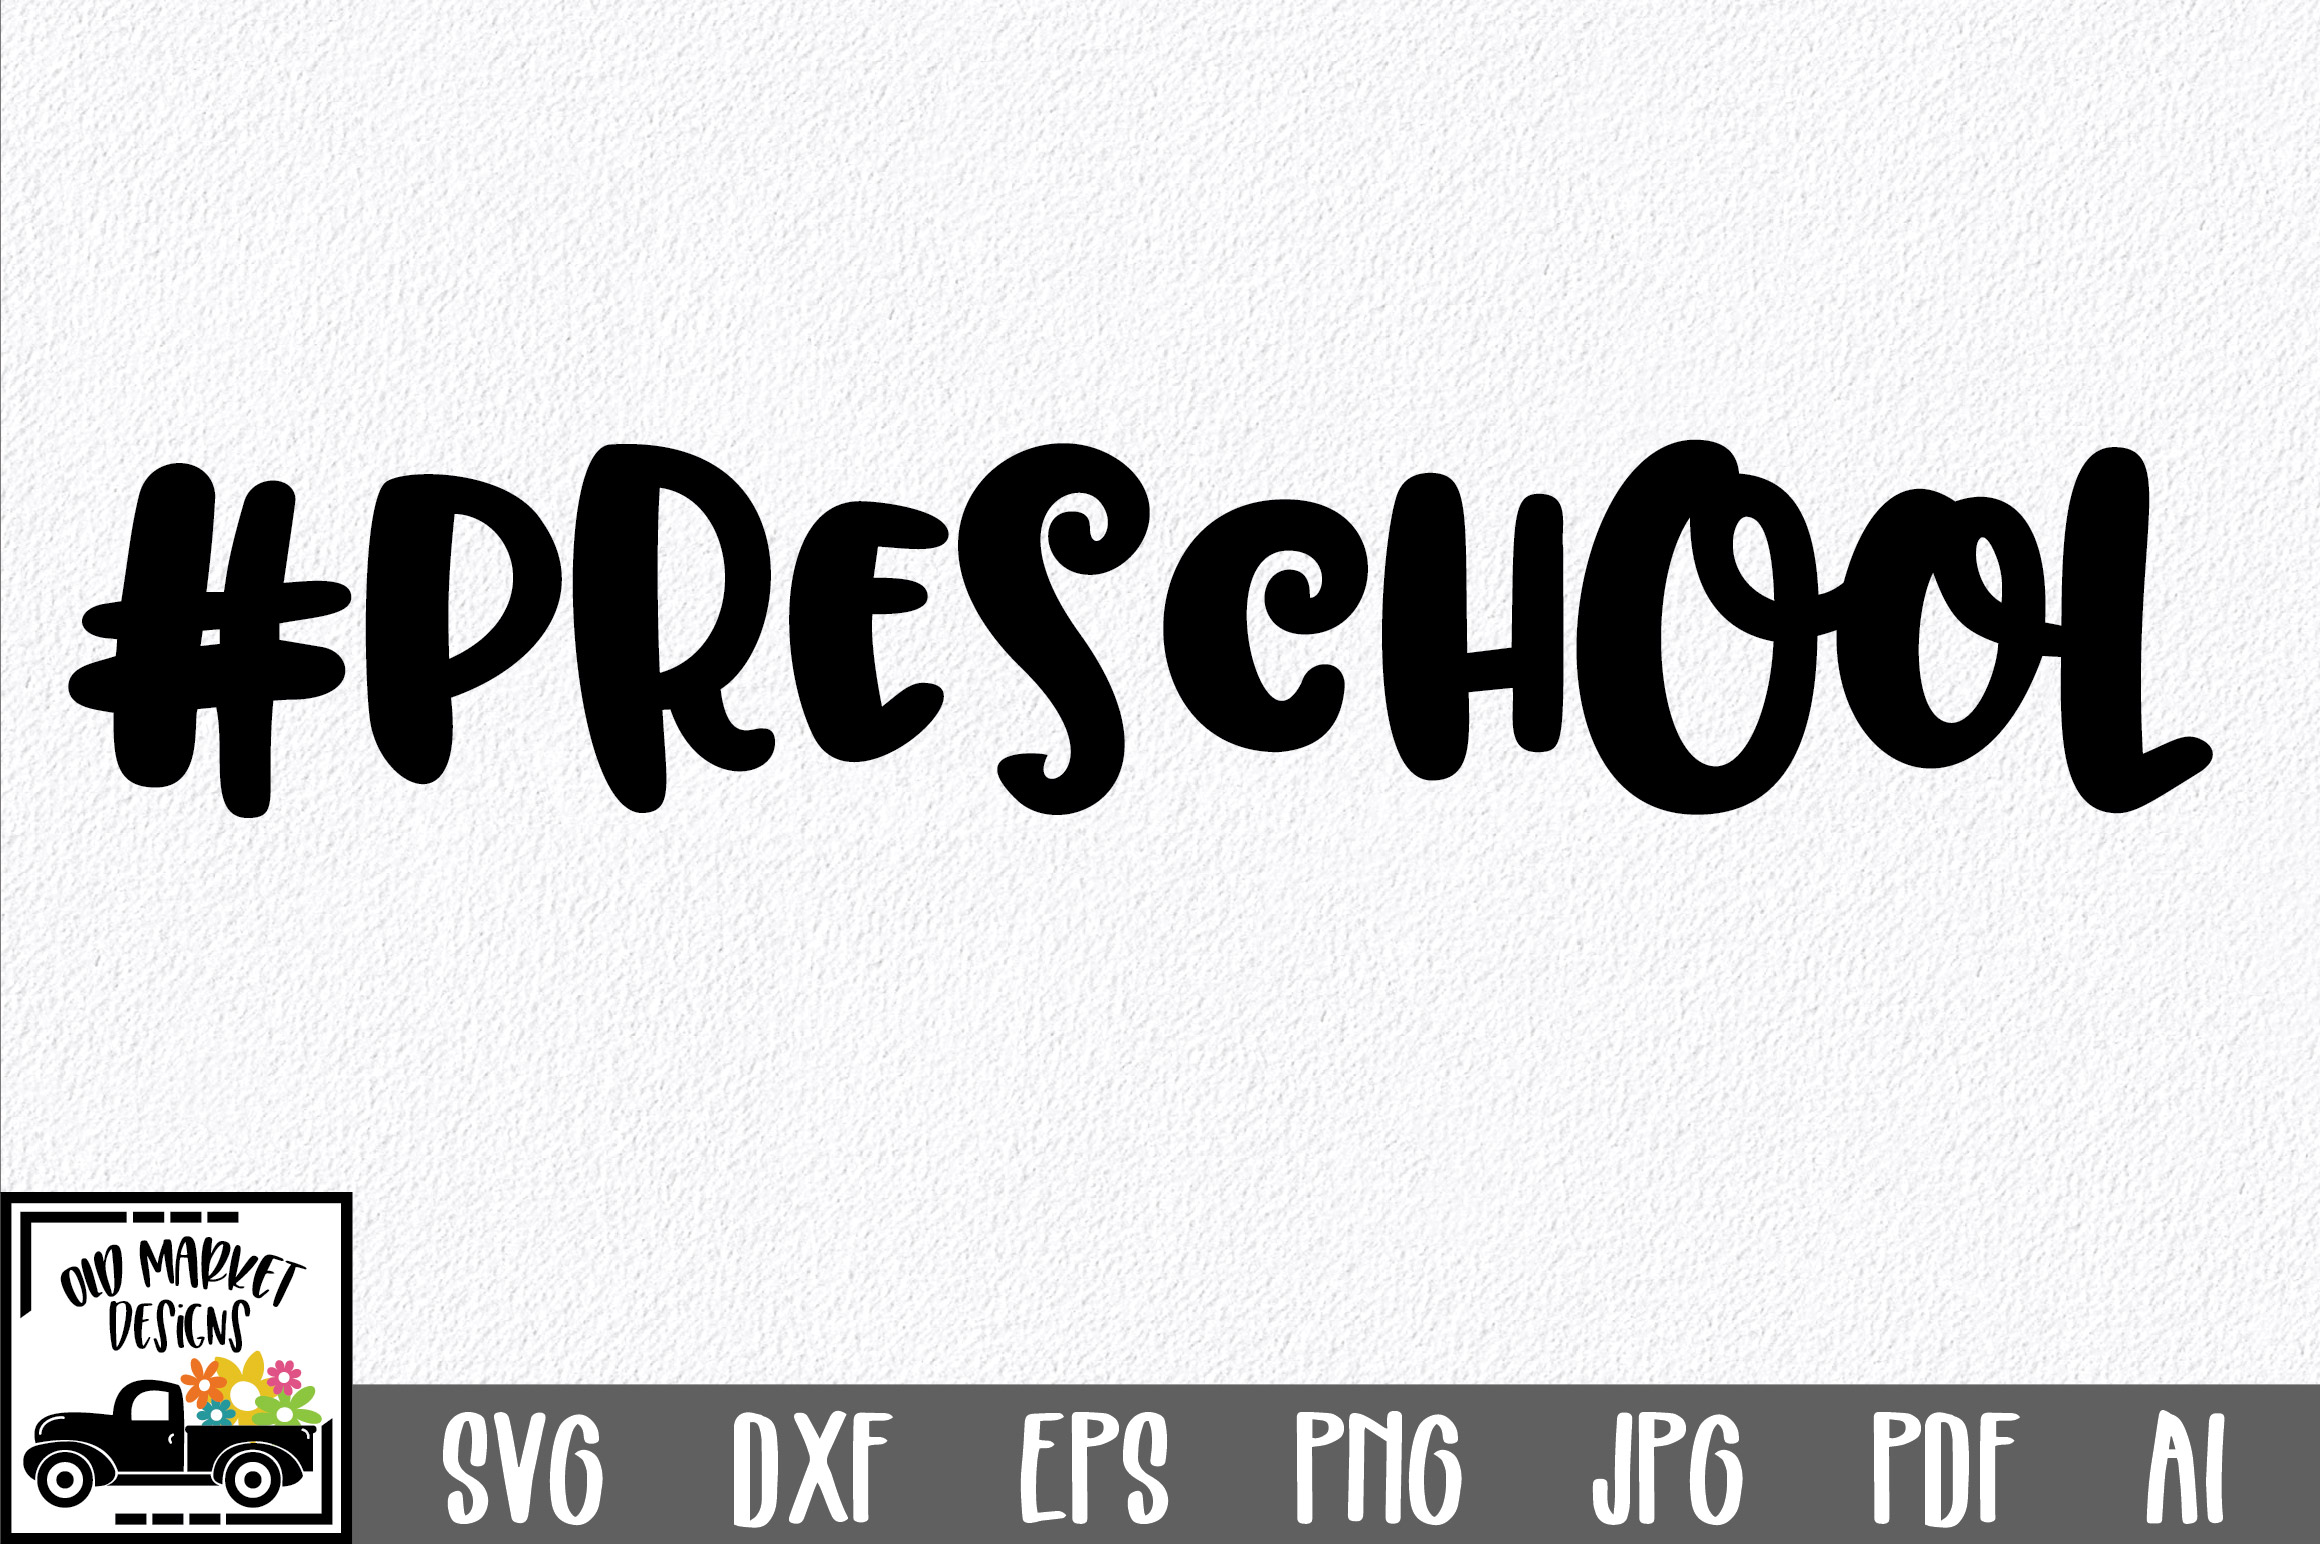 Download Free Preschool Graphic By Oldmarketdesigns Creative Fabrica for Cricut Explore, Silhouette and other cutting machines.